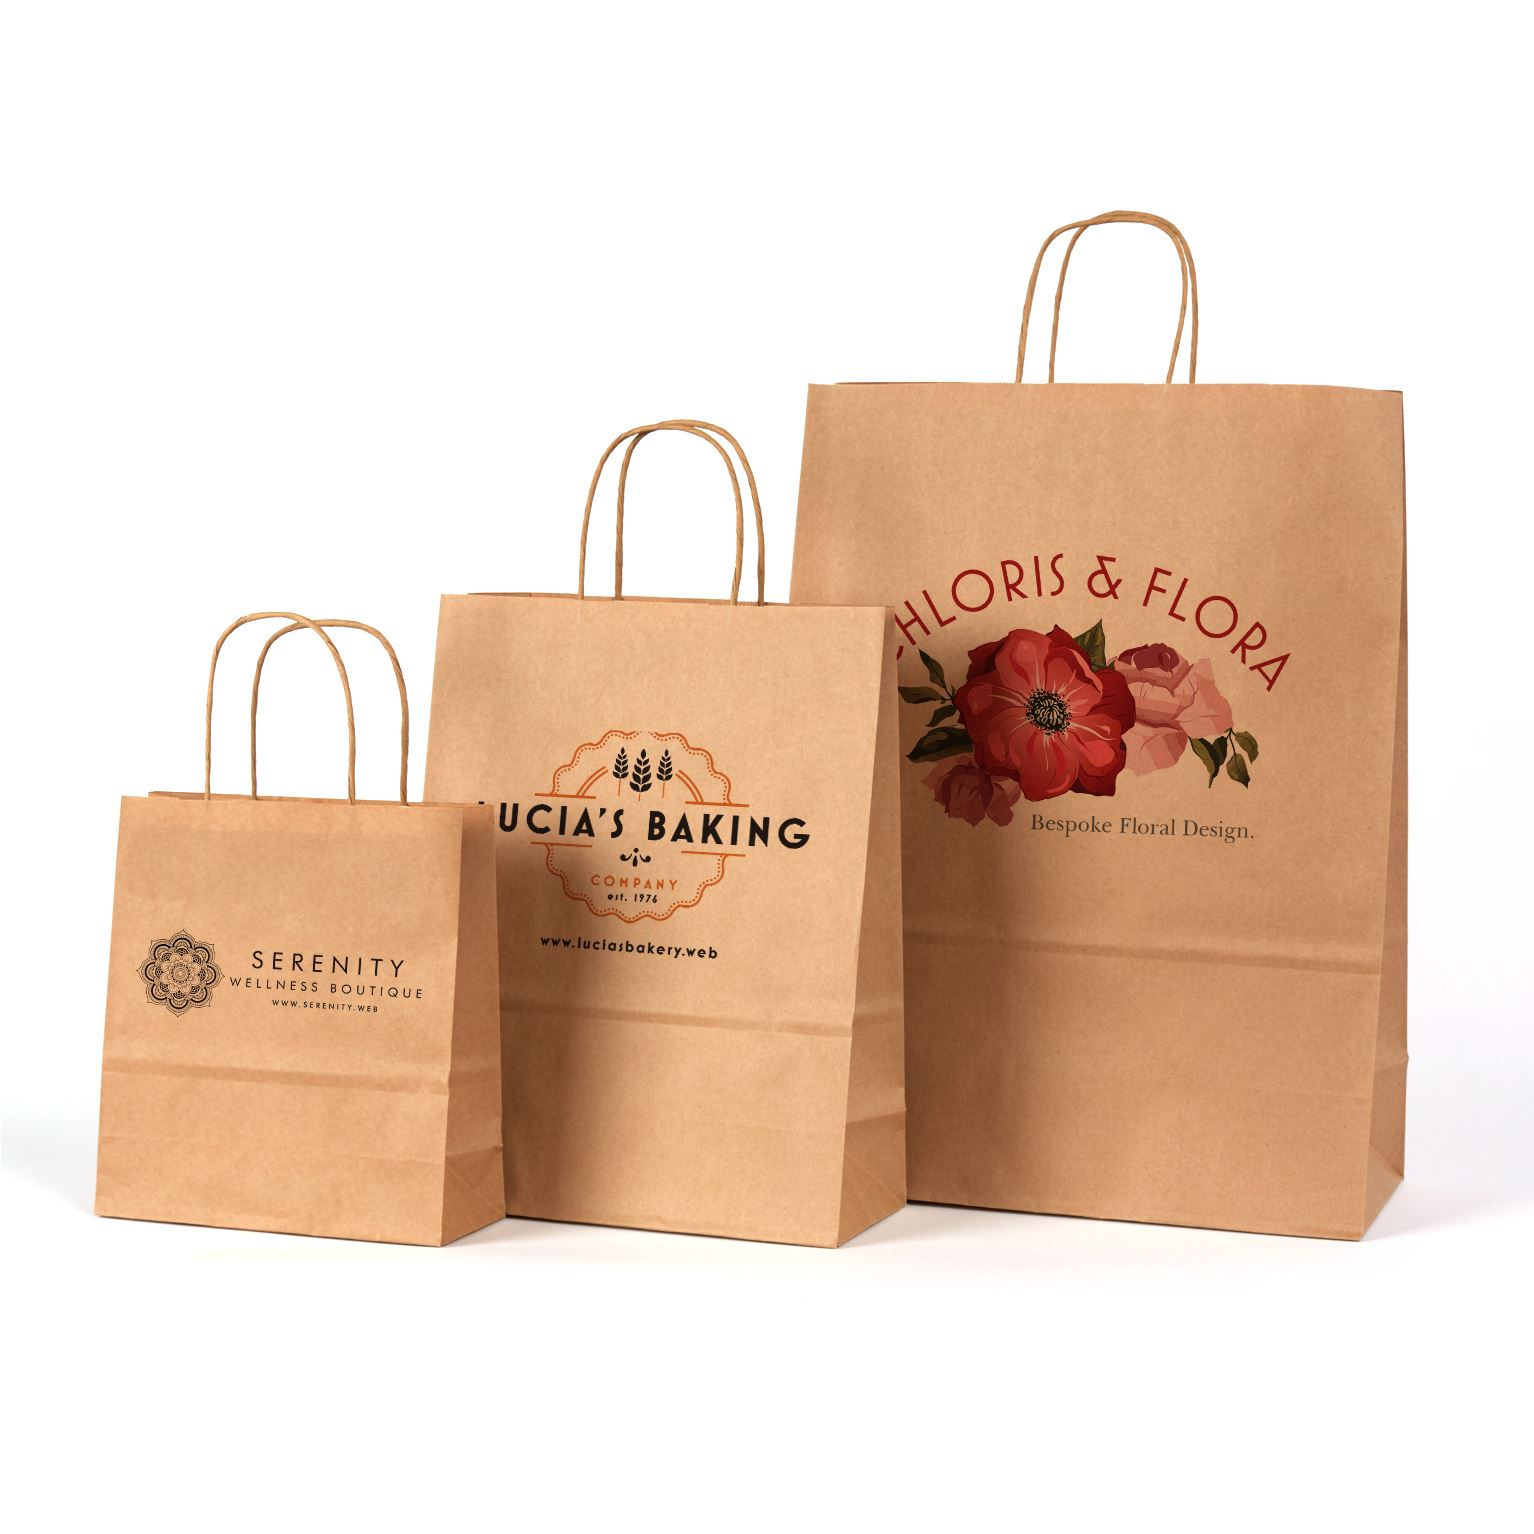 Extra small paper bags with handles